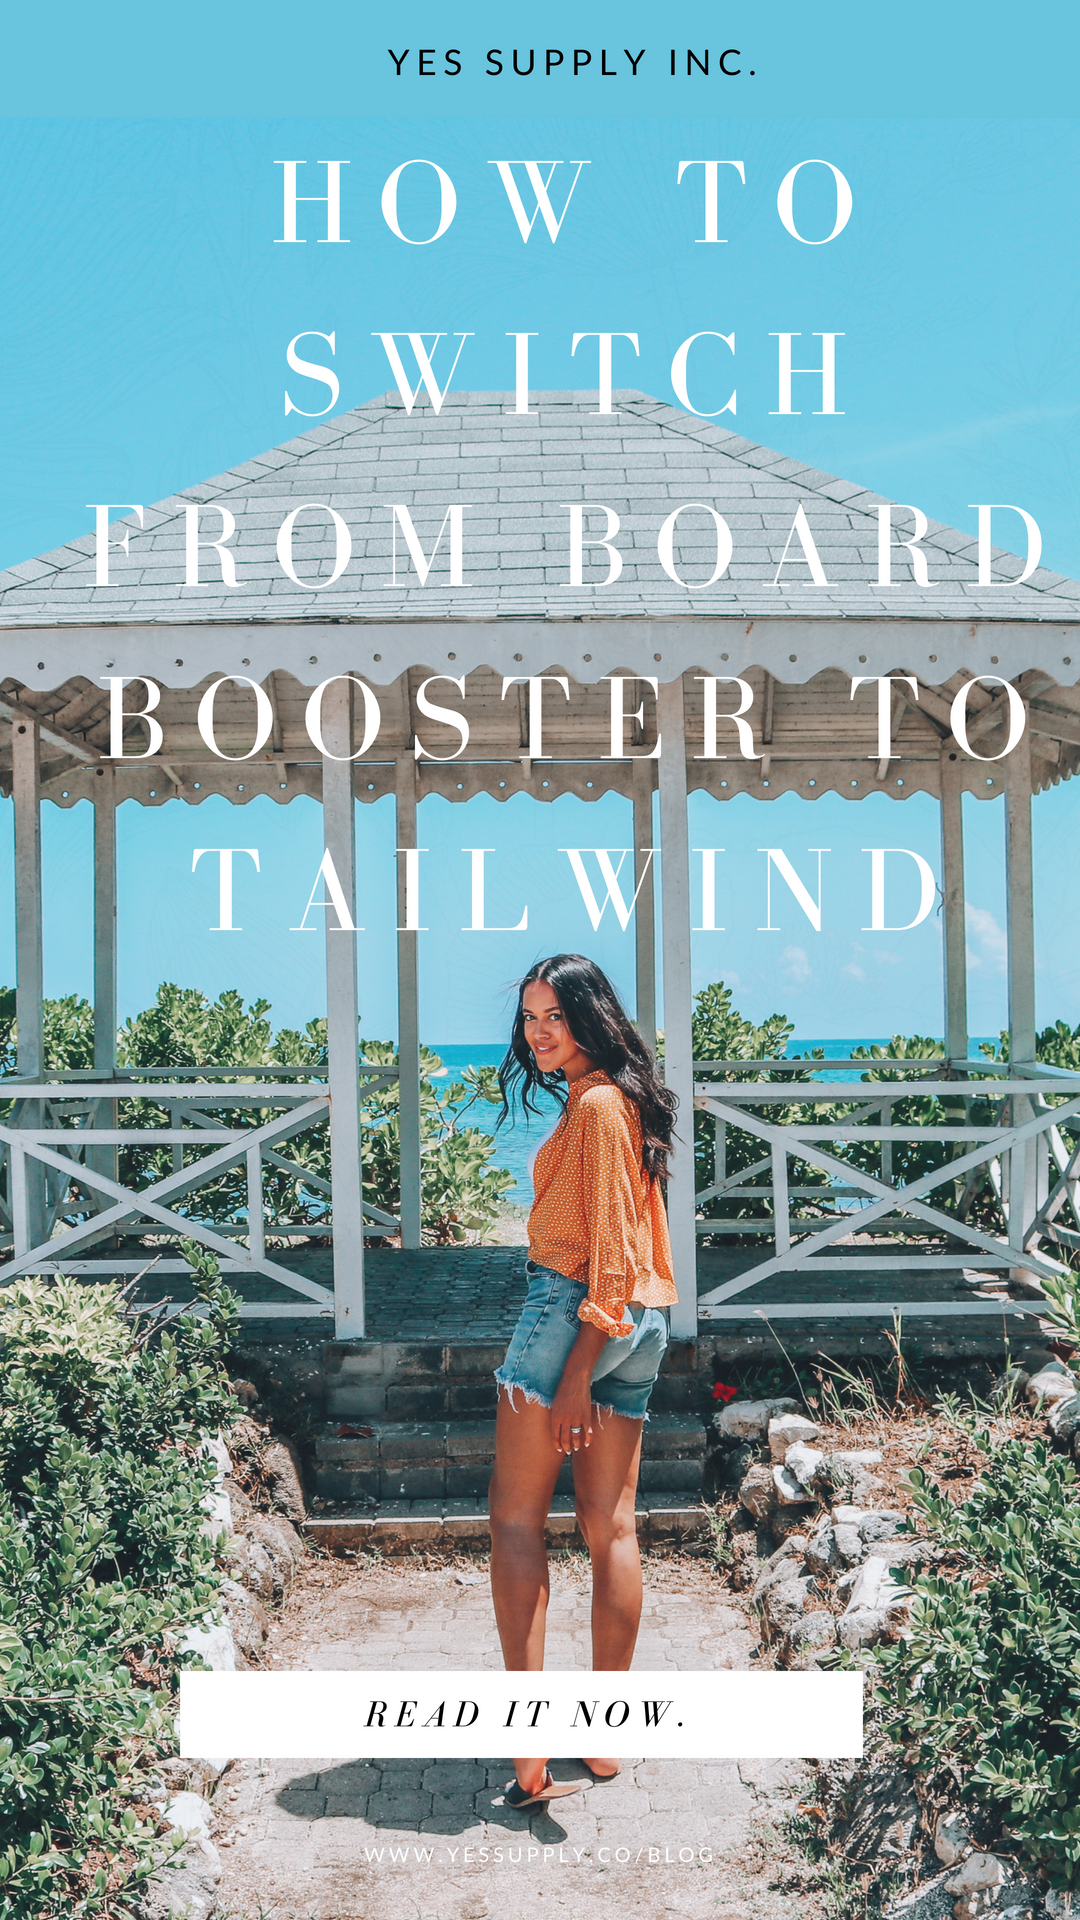 How to Make The Switch From Board Booster To Tailwind. Learn how to boost your pinterest strategy and see more growth and views using automation for your blog and business.